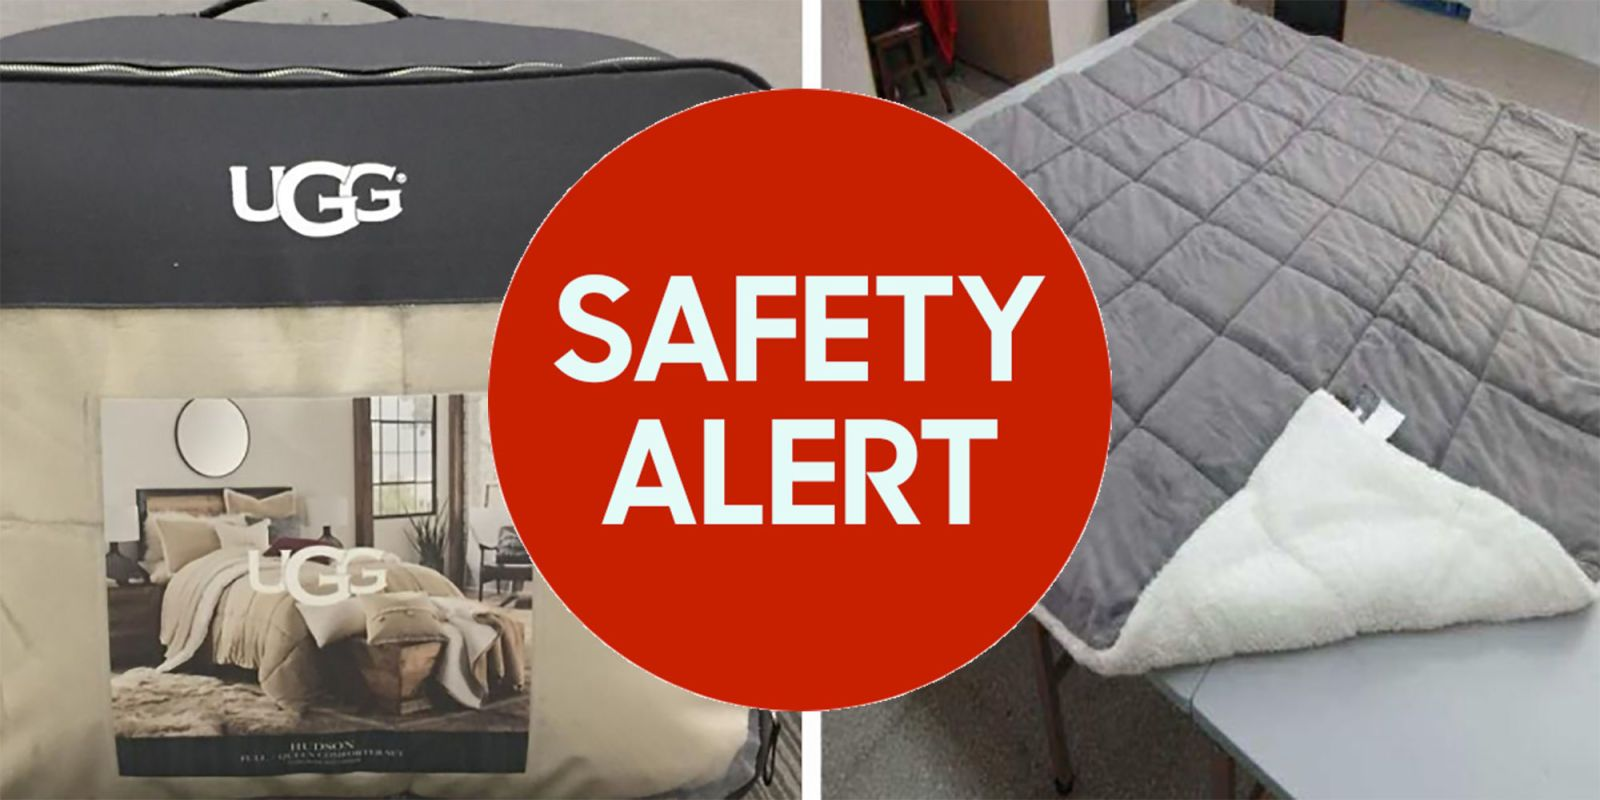 Ugg Comforters Recalled Due To Mold Contamination